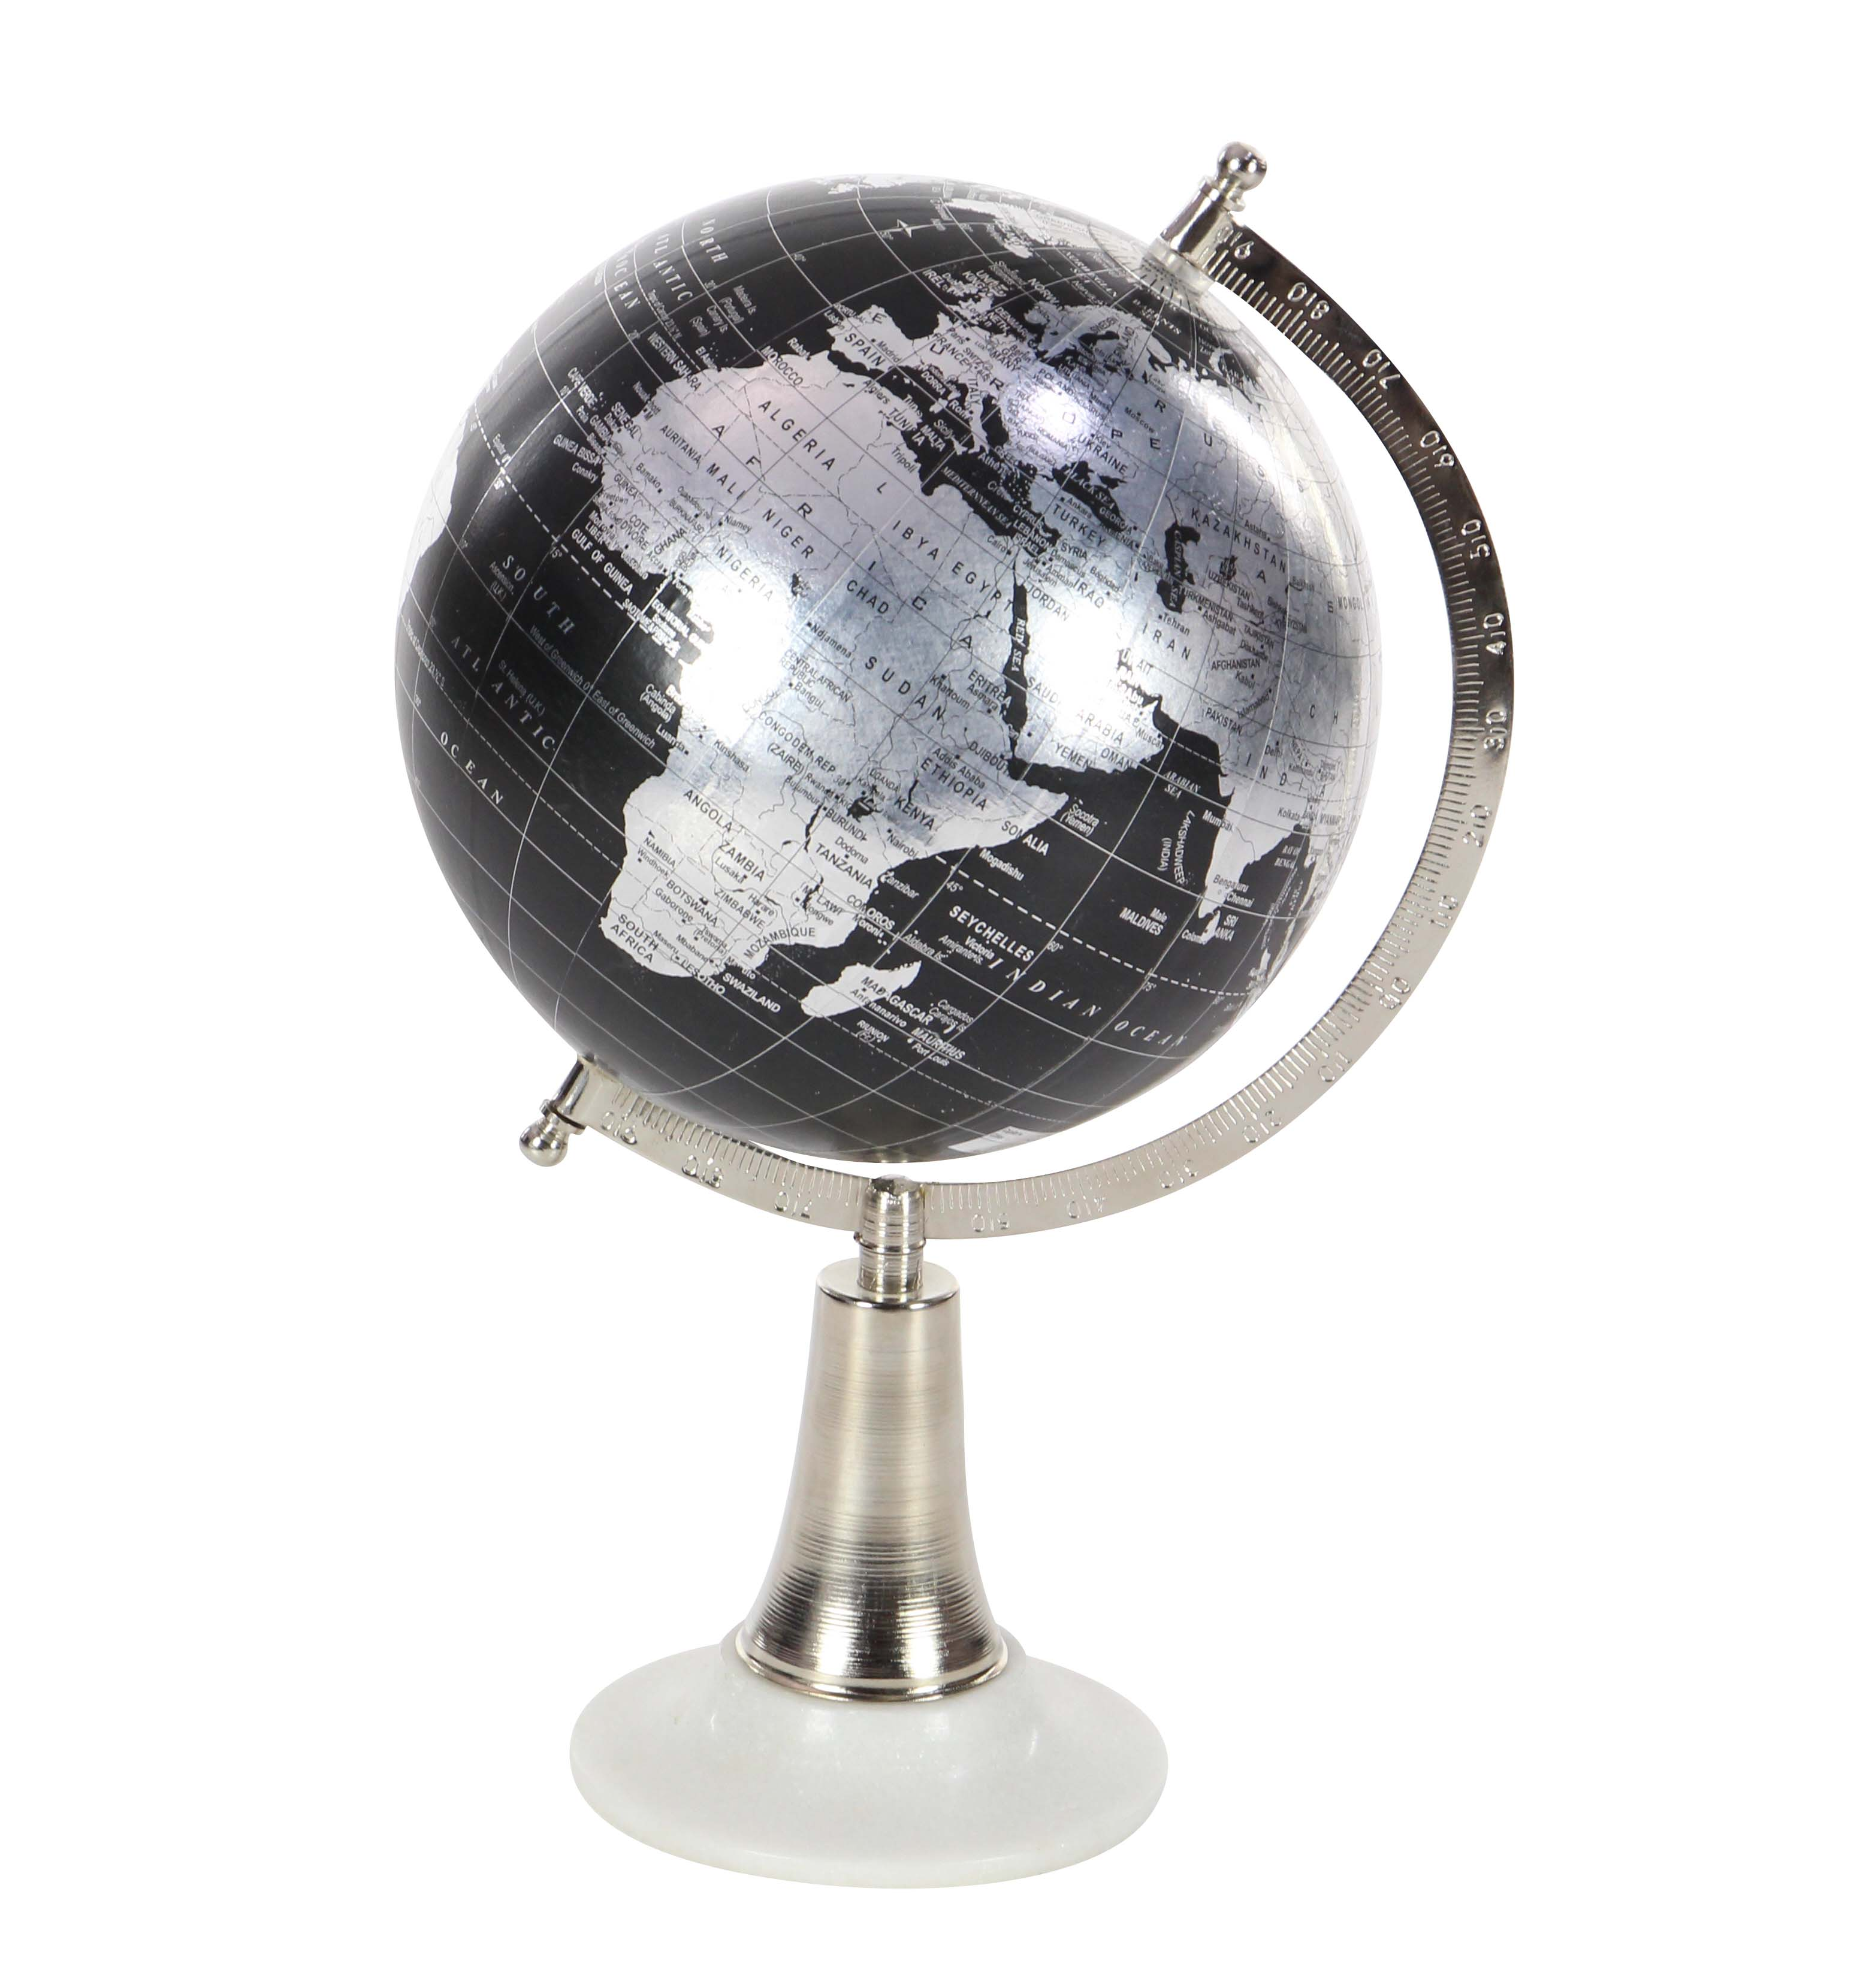 Decmode Contemporary 15 Inch Decorative Globe With Metal And Marble Stand, Black